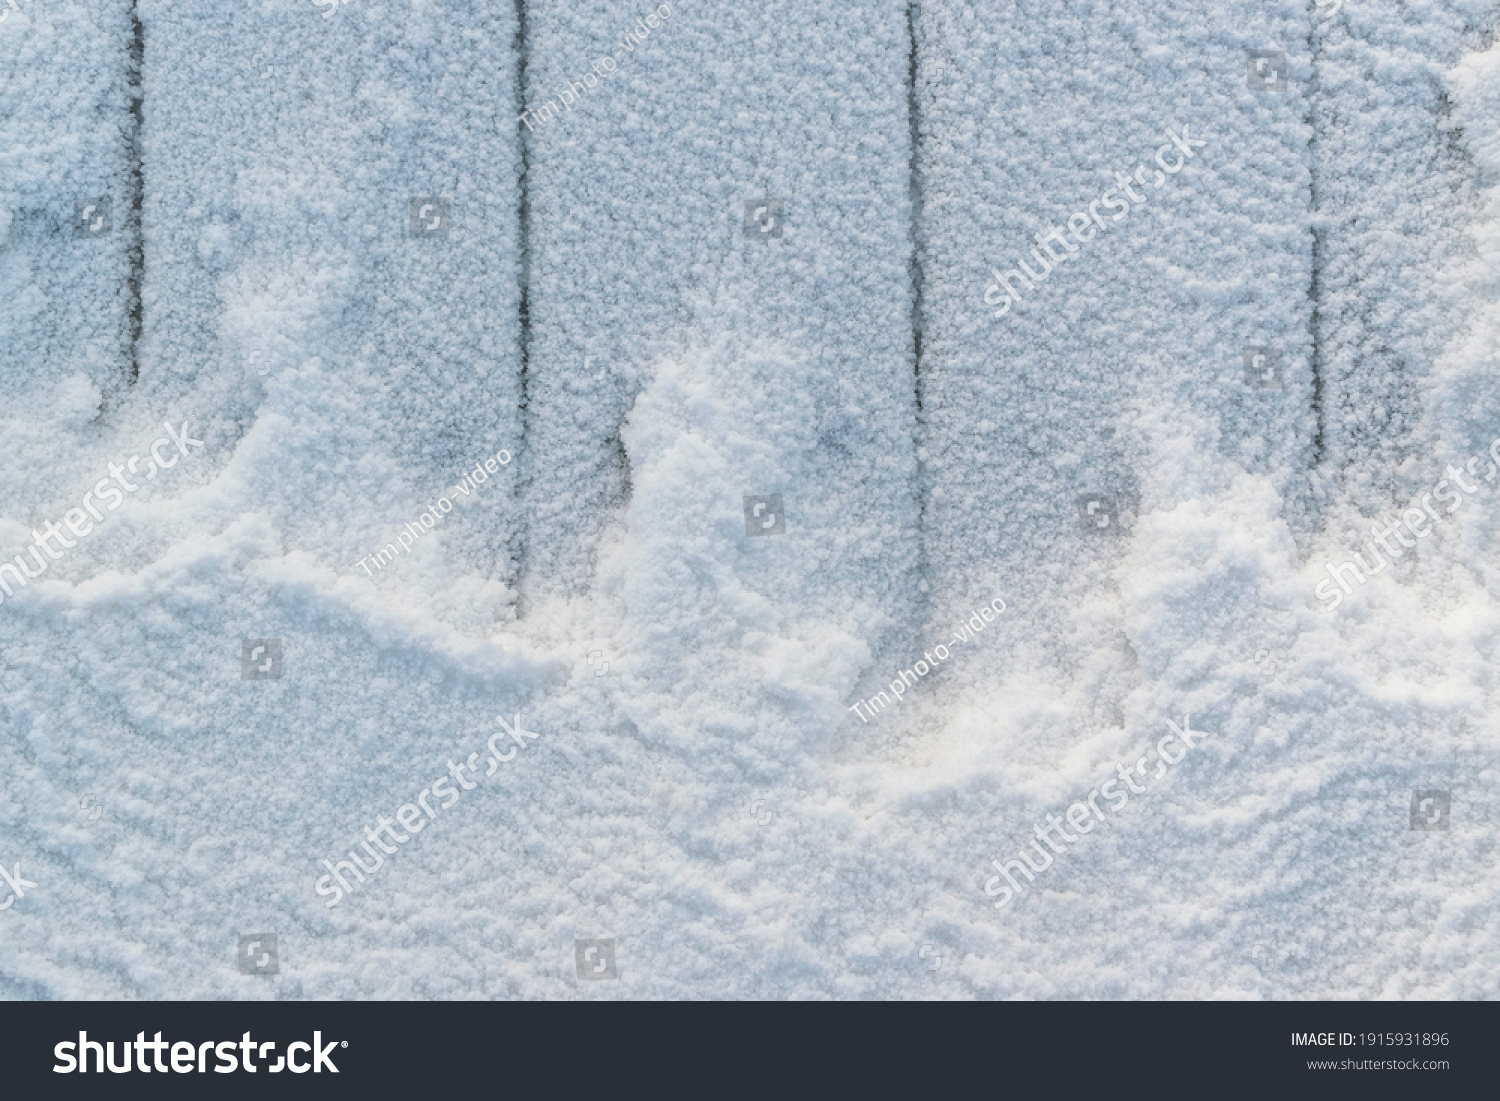 stock-photo-boards-with-snow-and-white-f